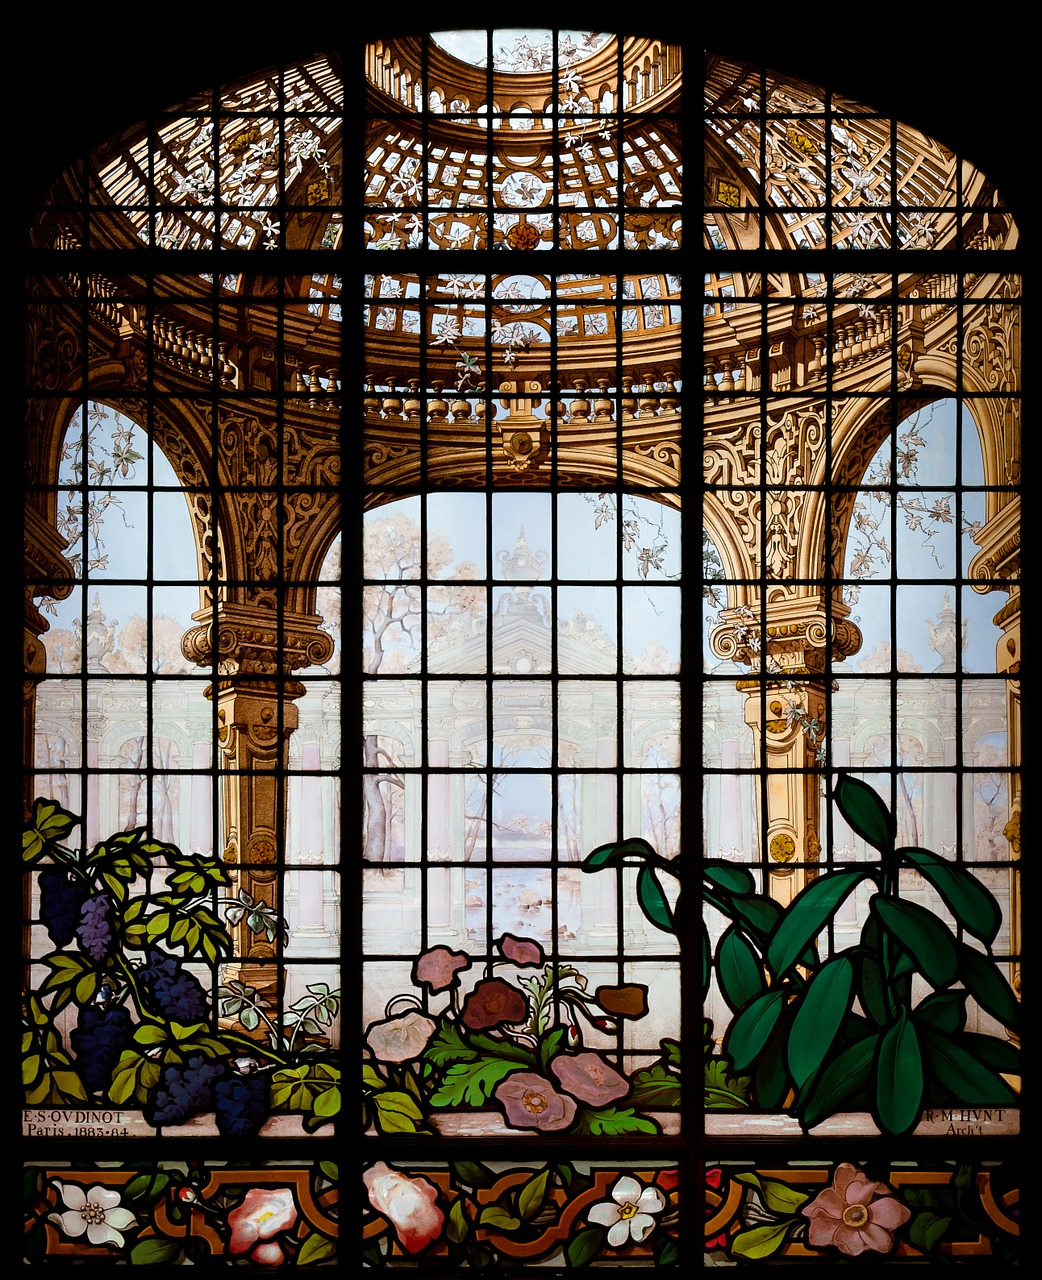 new york city,henry g marquand house,landmark,historical,building,inside,architecture,stained,stained-glass window,beautiful,window,free pictures, free photos, free images, royalty free, free illustrations, public domain